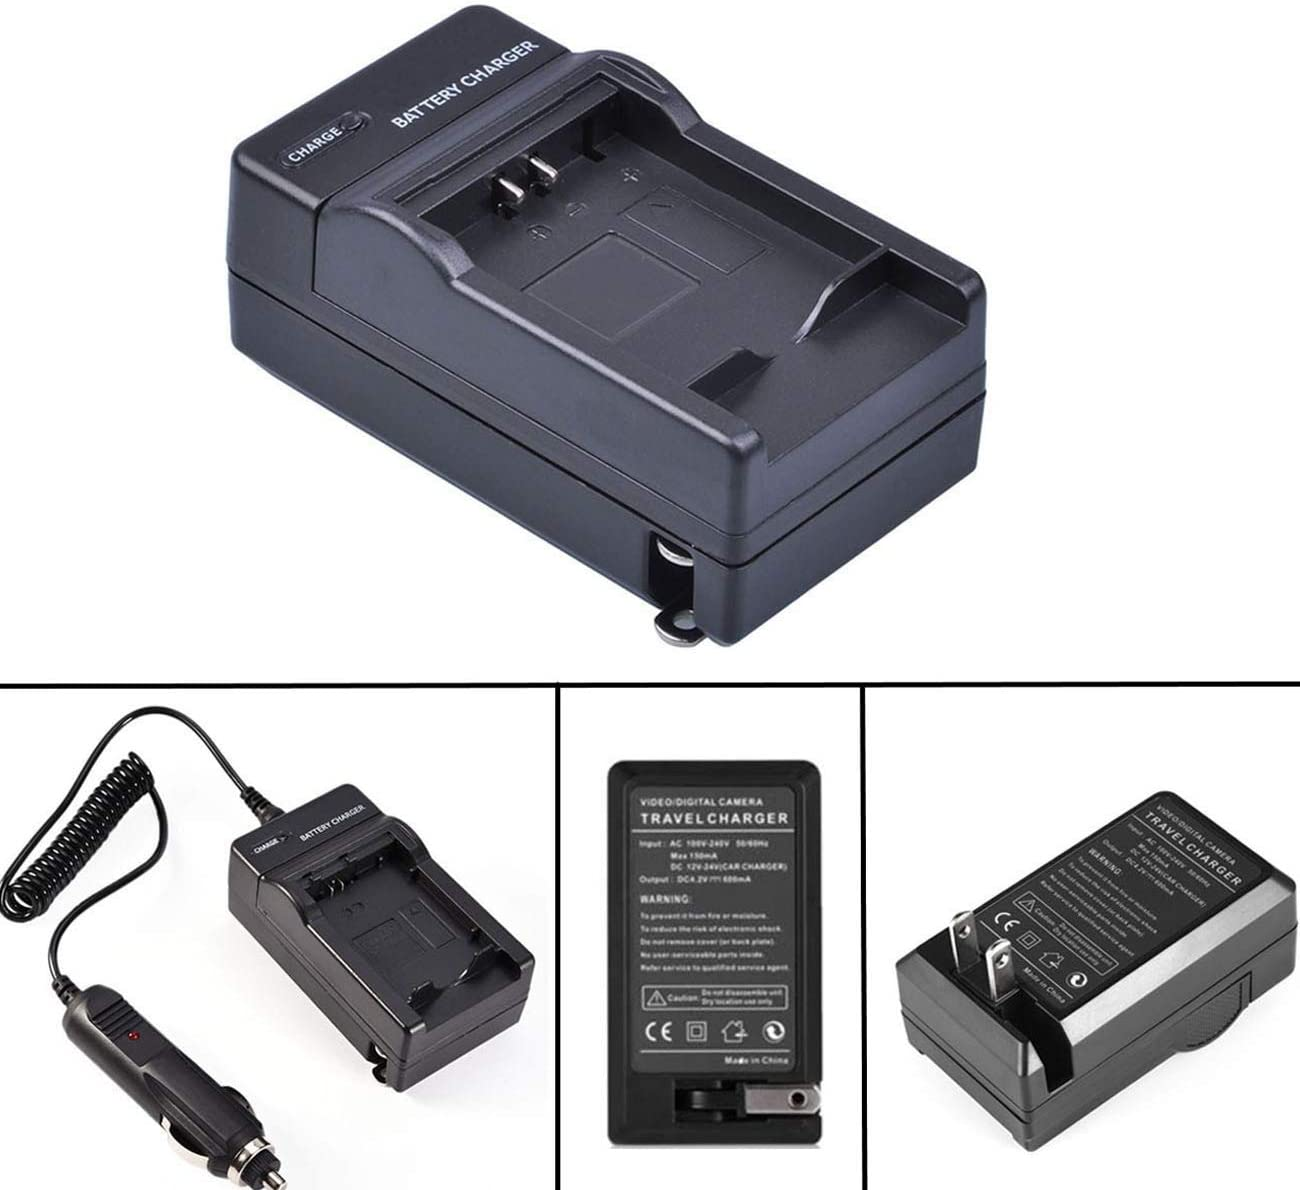 DCR-PC8 LCD Quick Battery Charger for Sony DCR-PC6 DCR-PC115 MiniDV Handycam Camcorder DCR-PC9